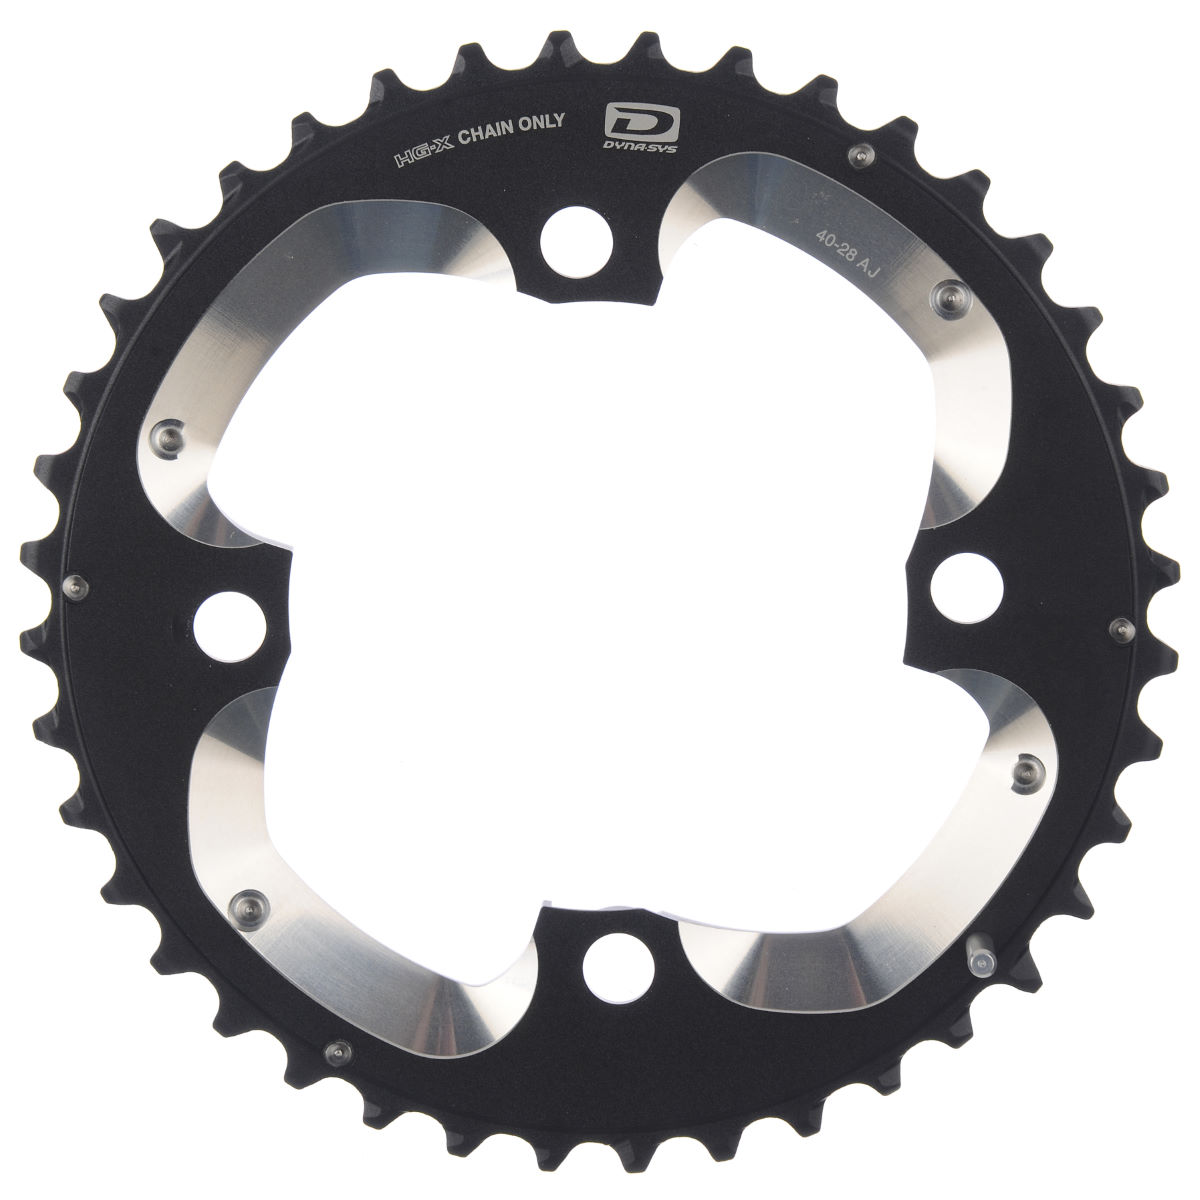 Shimano Xt Fcm785 10 Speed Double Chainring - Ak Type 38t 10 Speed